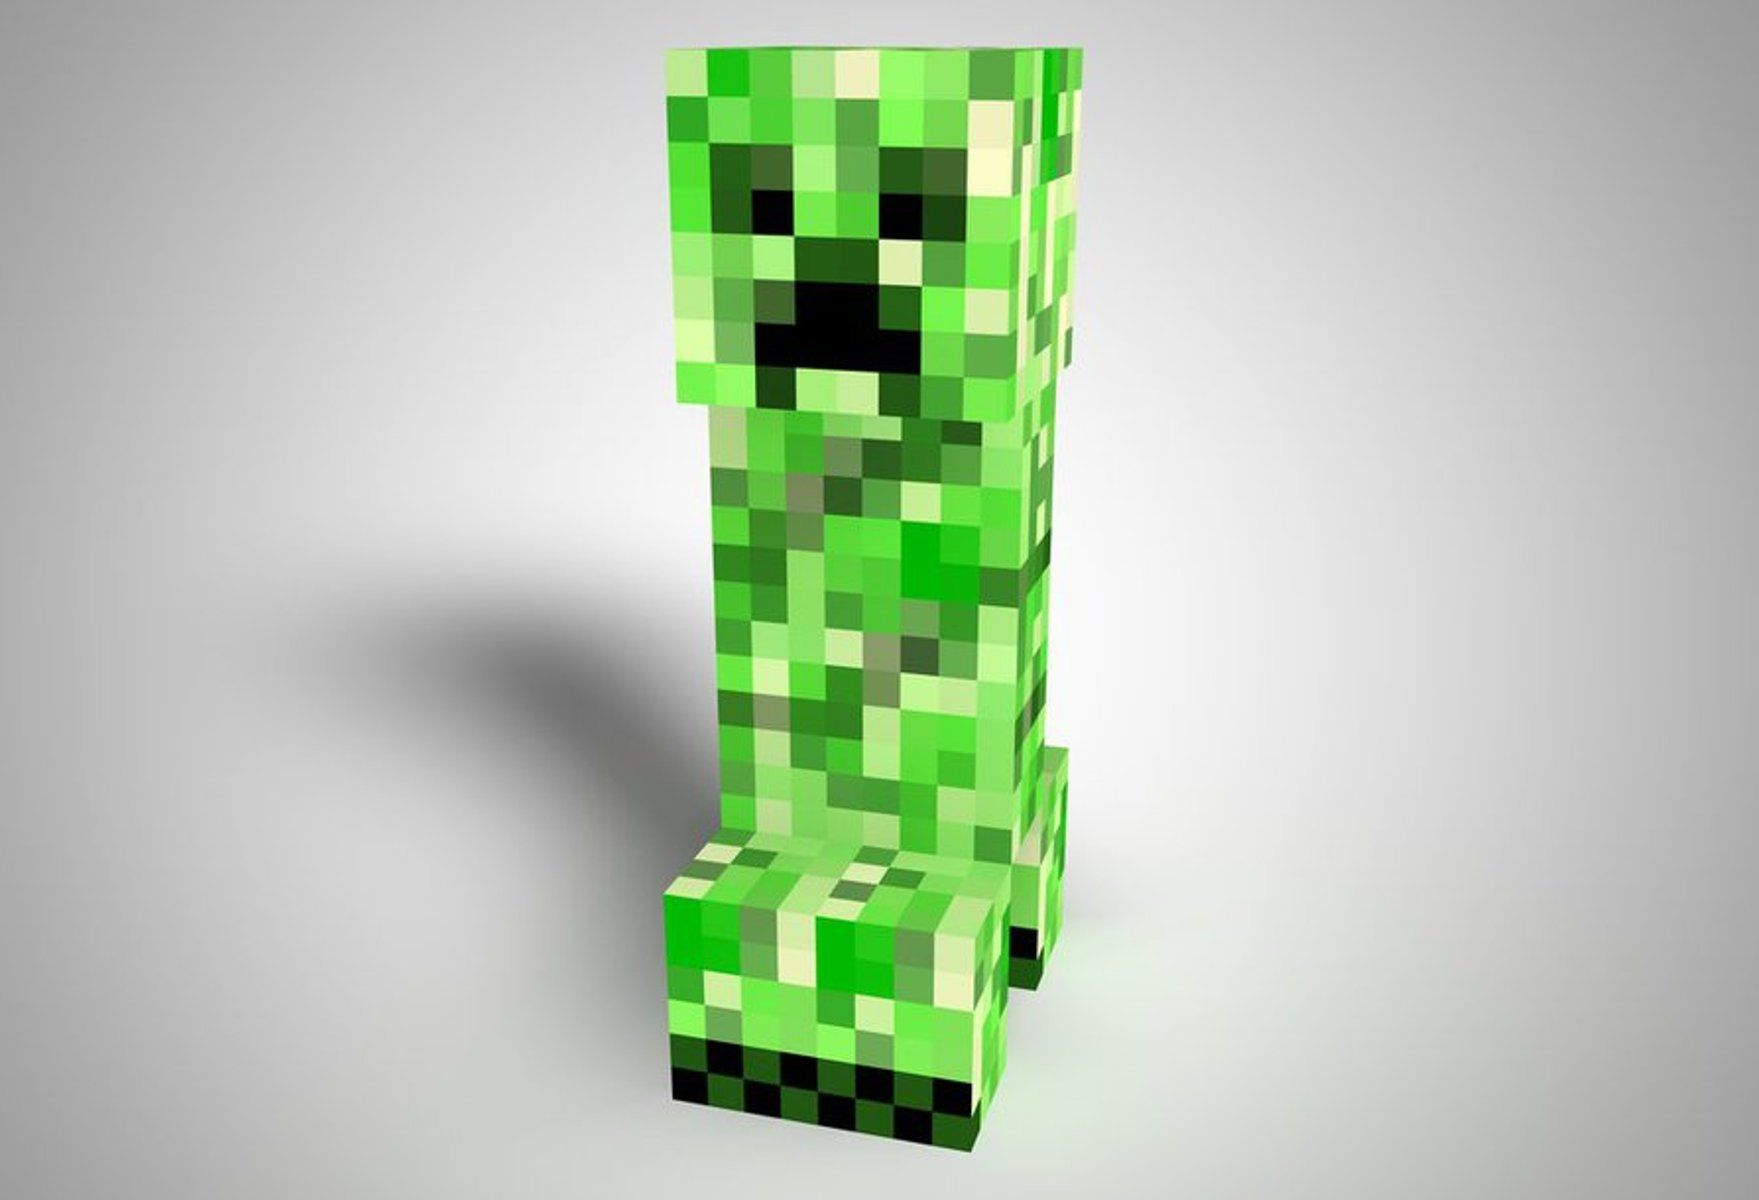 Minecraft Creeper Pictures Games Wallpapers Hd Creeper Minecraft Creepers Minecraft